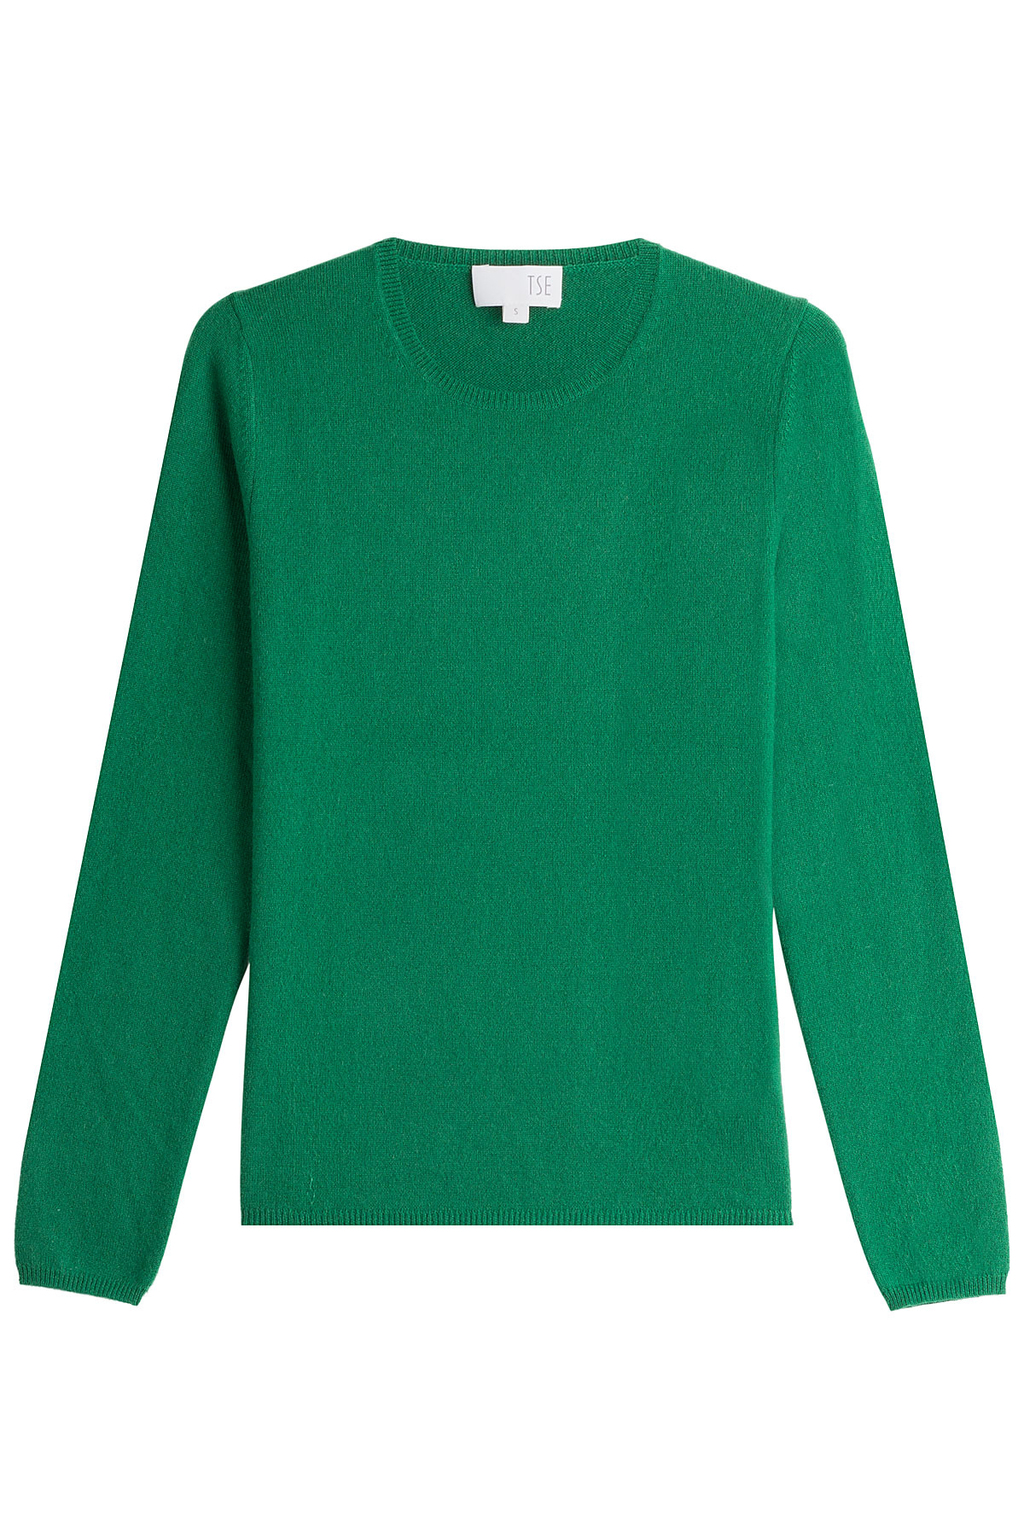 Cashmere Pullover - pattern: plain; style: standard; predominant colour: emerald green; occasions: casual; length: standard; fit: slim fit; neckline: crew; fibres: cashmere - 100%; sleeve length: long sleeve; sleeve style: standard; texture group: knits/crochet; pattern type: knitted - fine stitch; season: a/w 2016; wardrobe: highlight